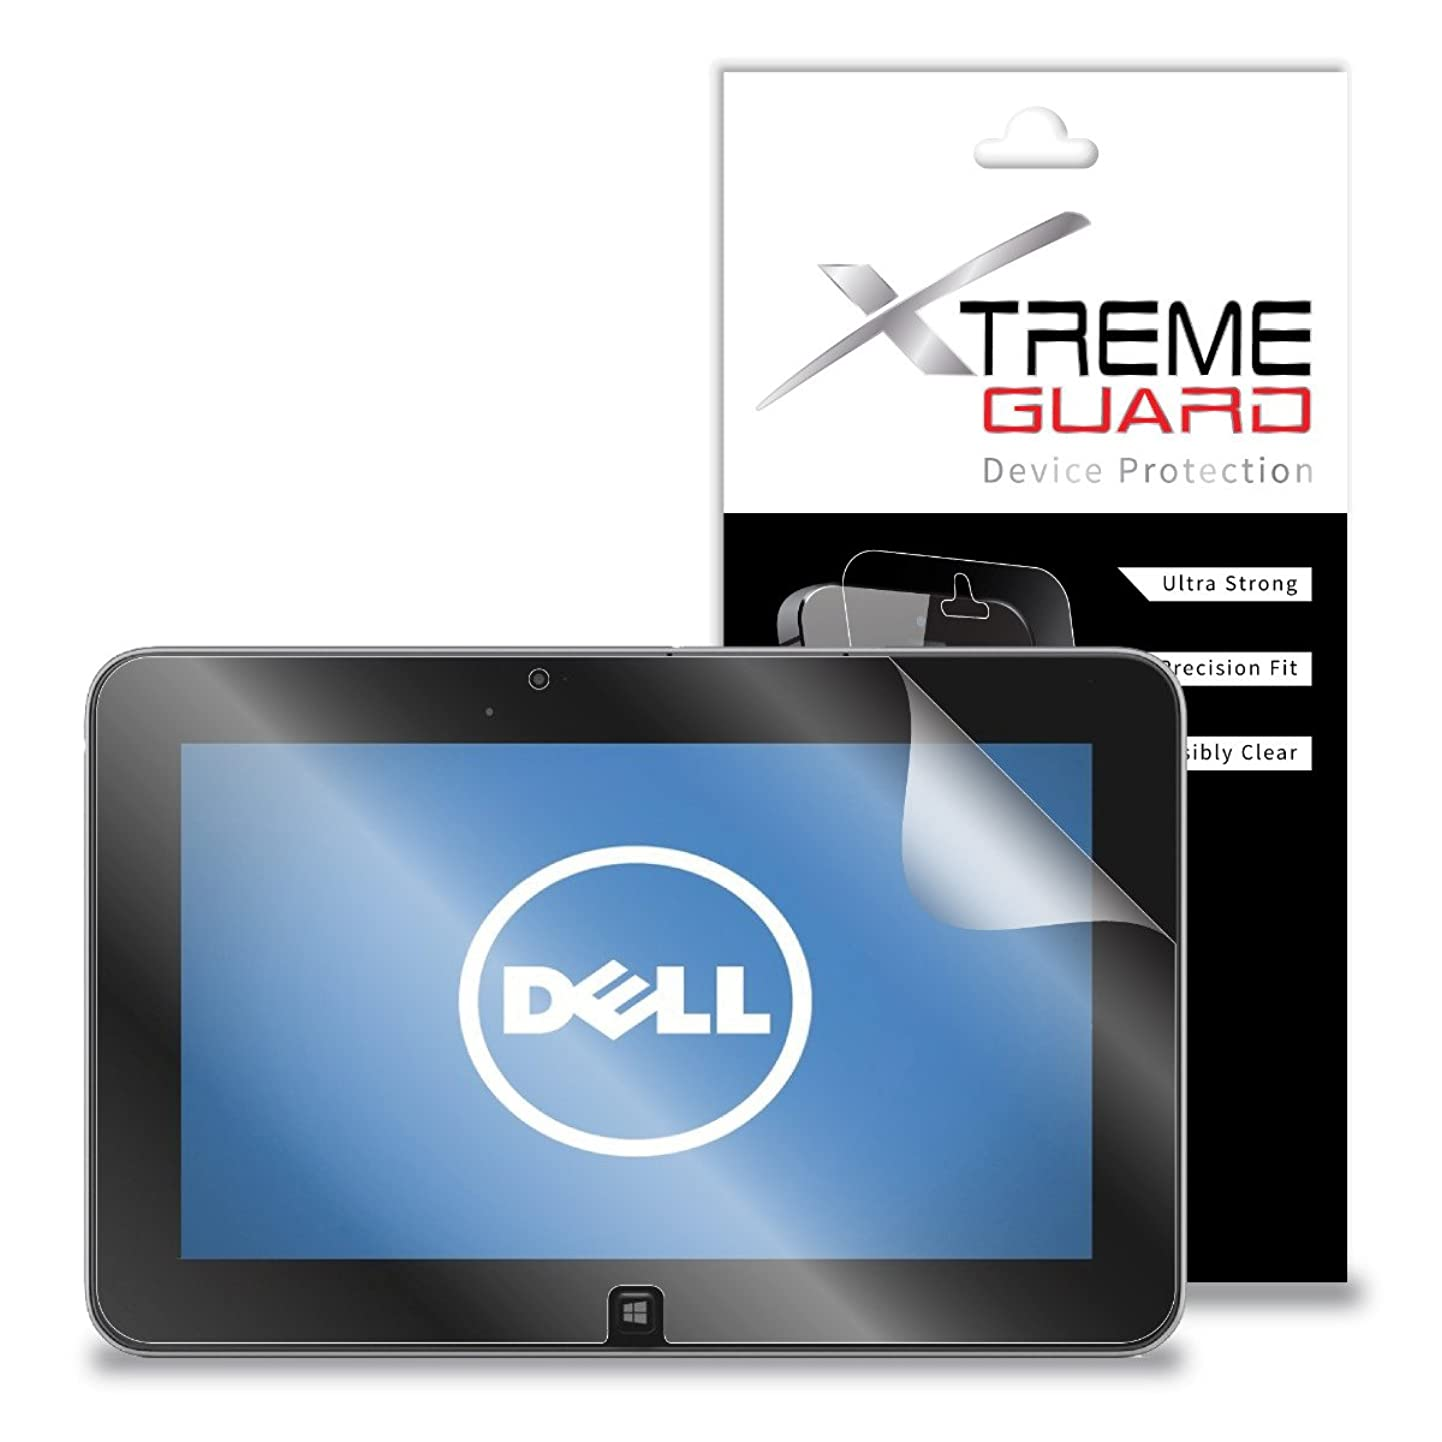 XtremeGuard Screen Protector for Dell XPS 10 Windows RT Tablet (Ultra Clear) snoteyyludn1